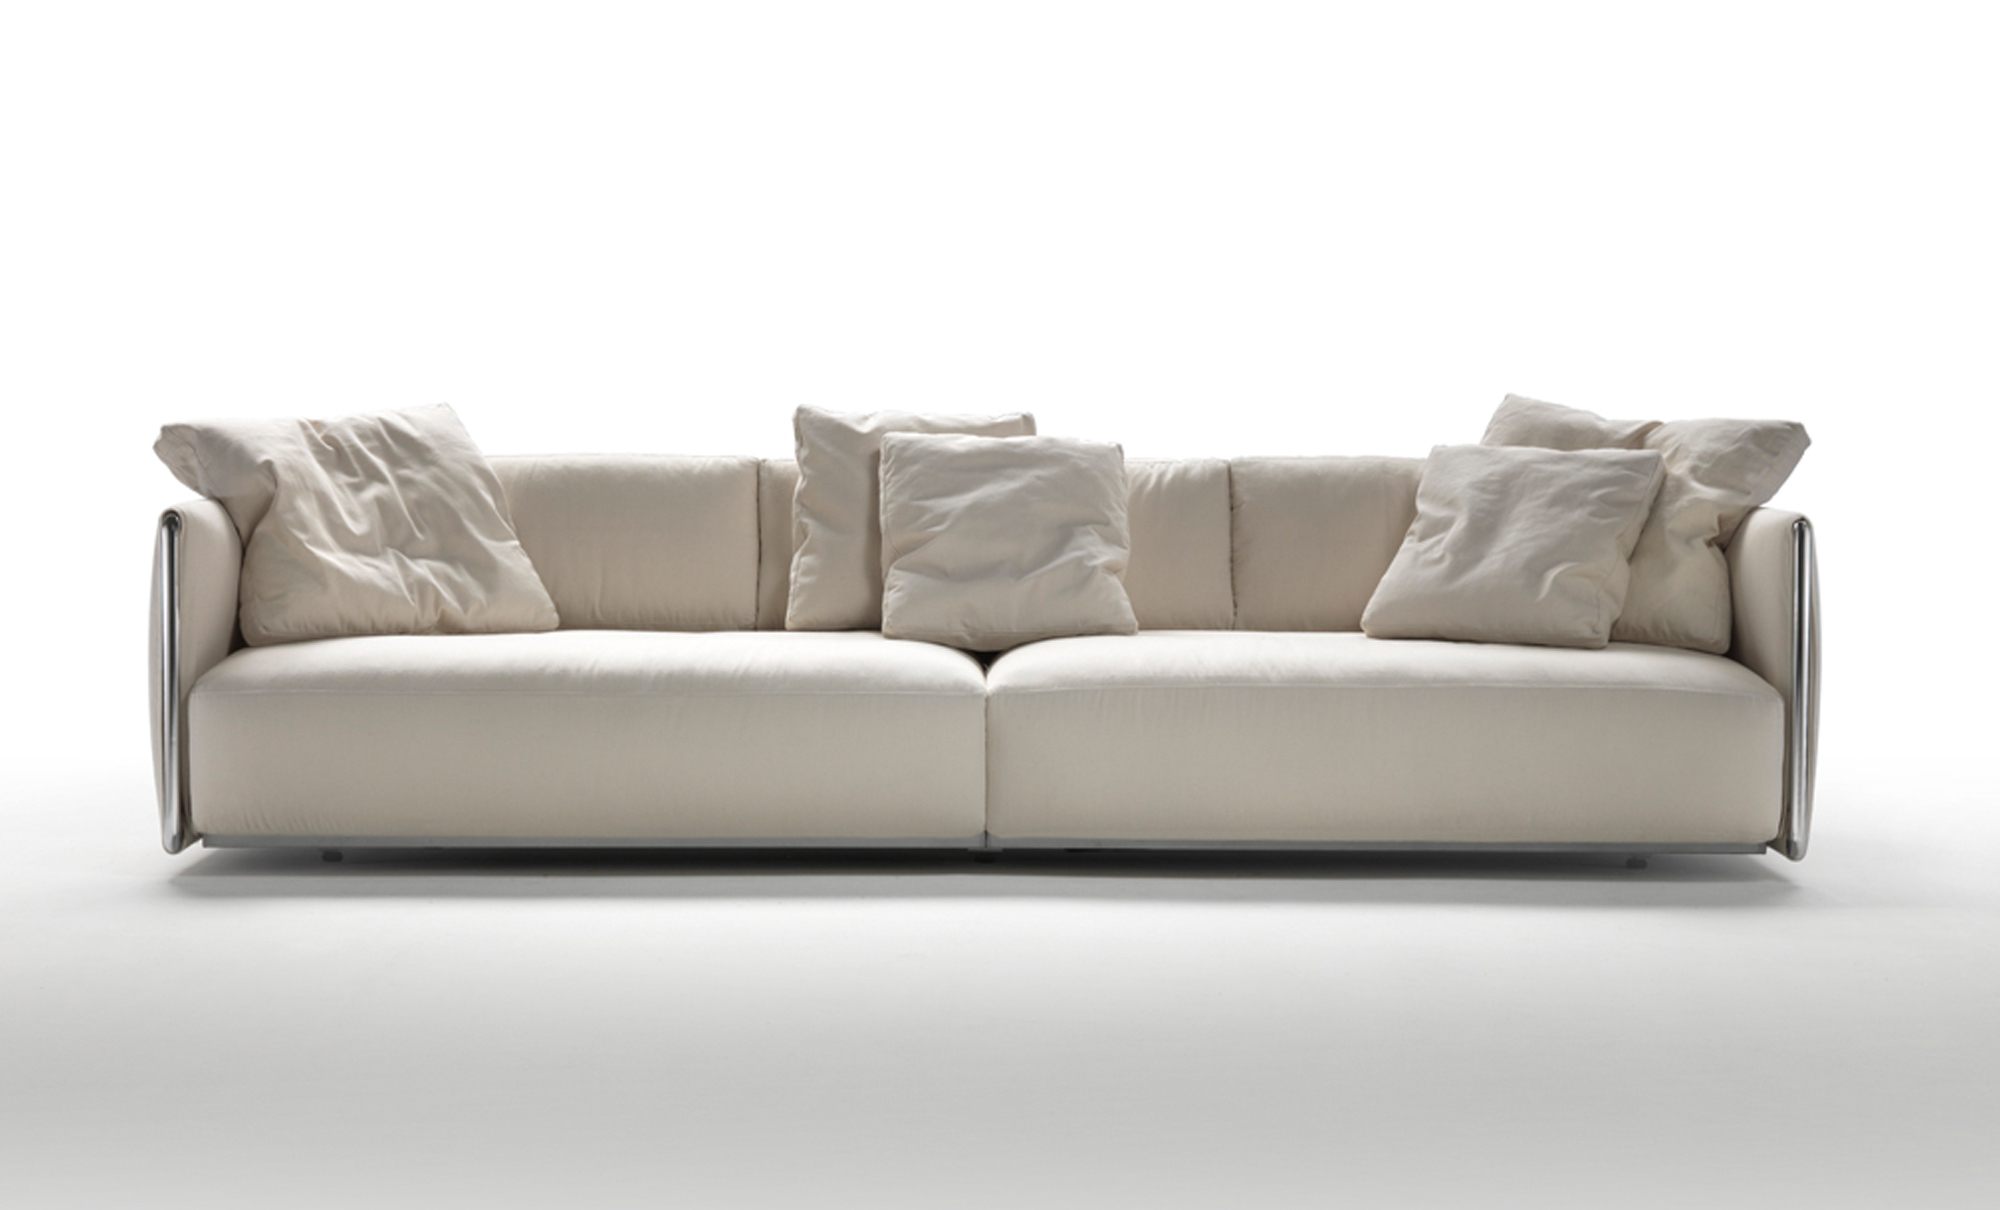 Sofa Minimalist Design